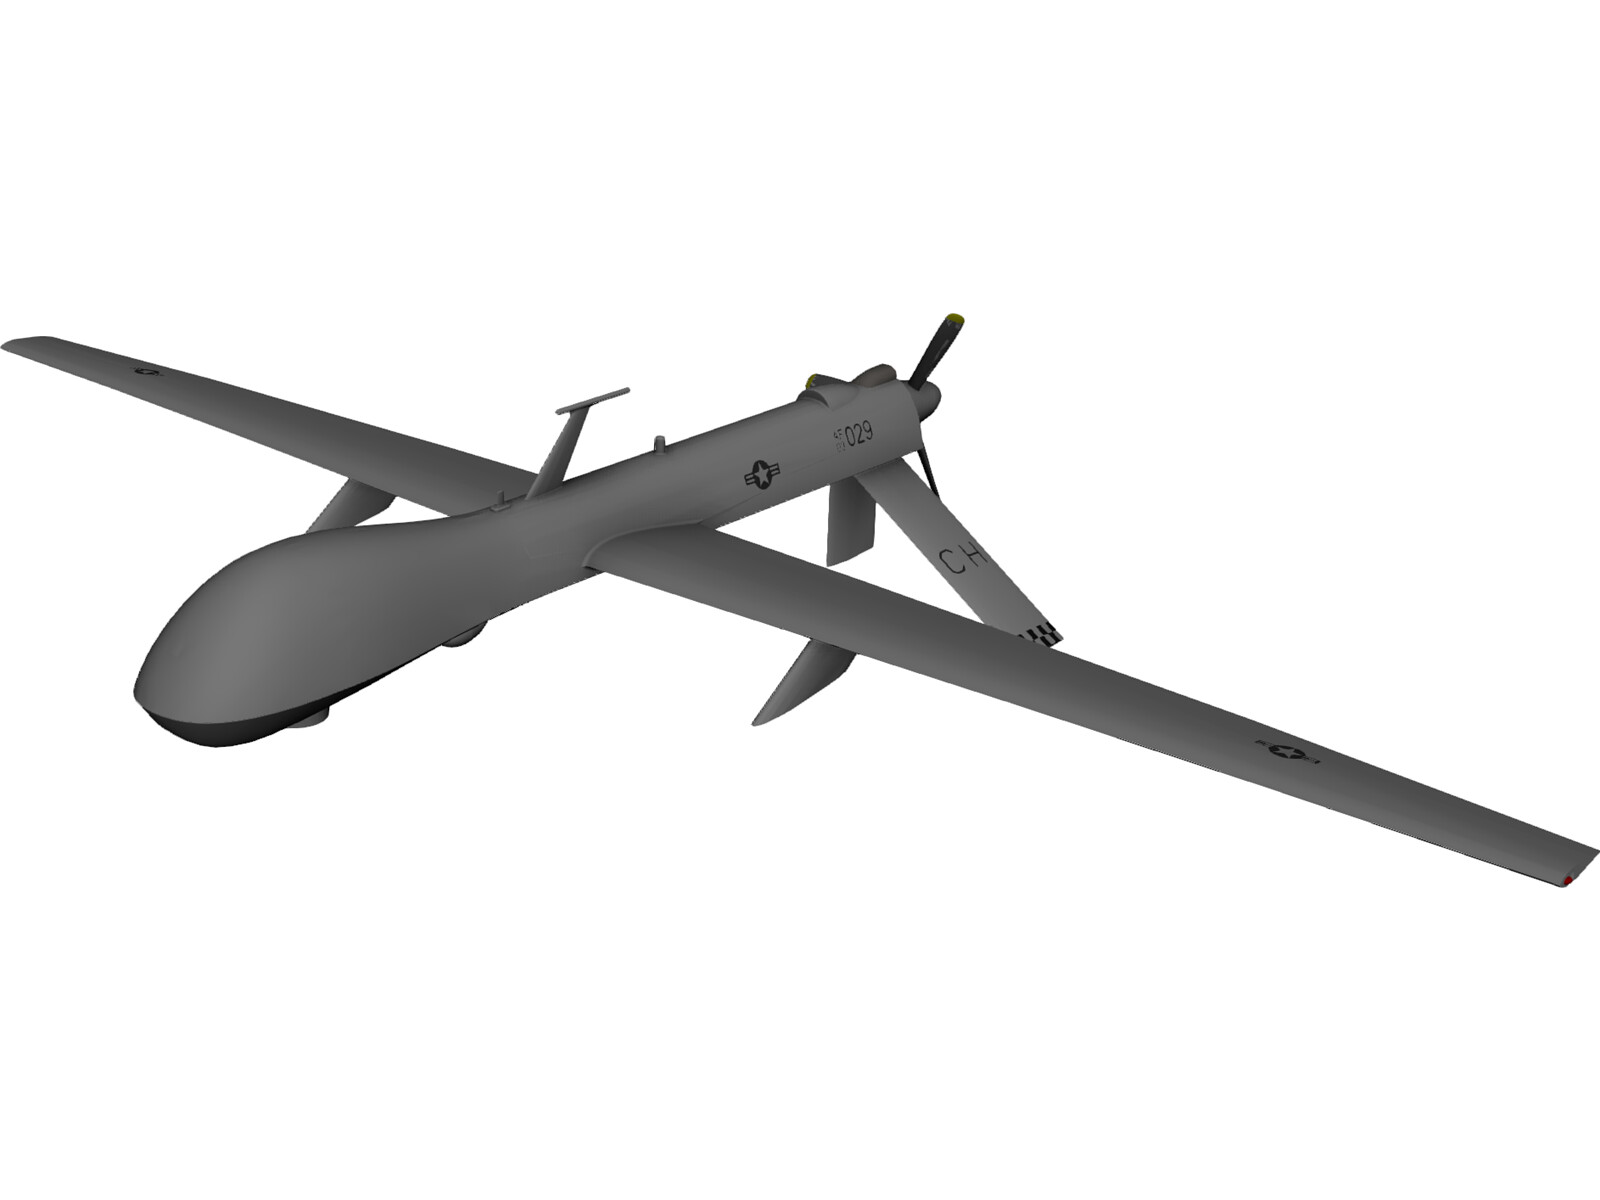 General Atomics MQ-1 Predator UAV Drone 3D Model